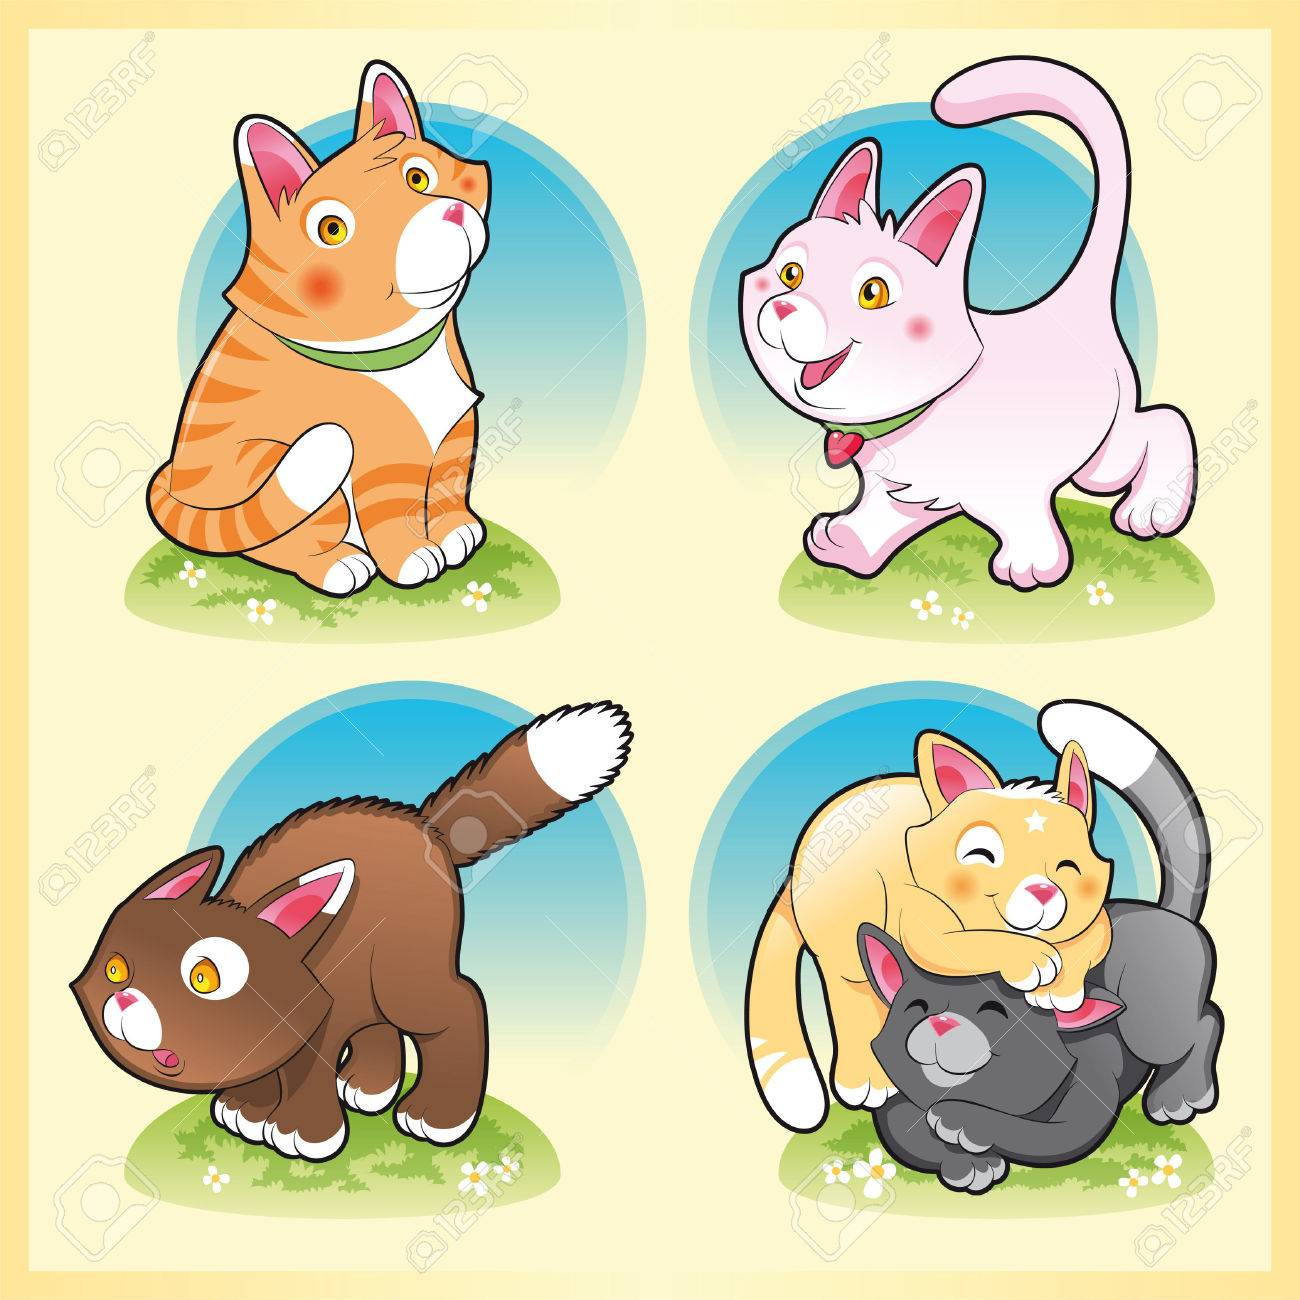 Family of cats, cartoon and vector illustration Stock Vector - 5516453